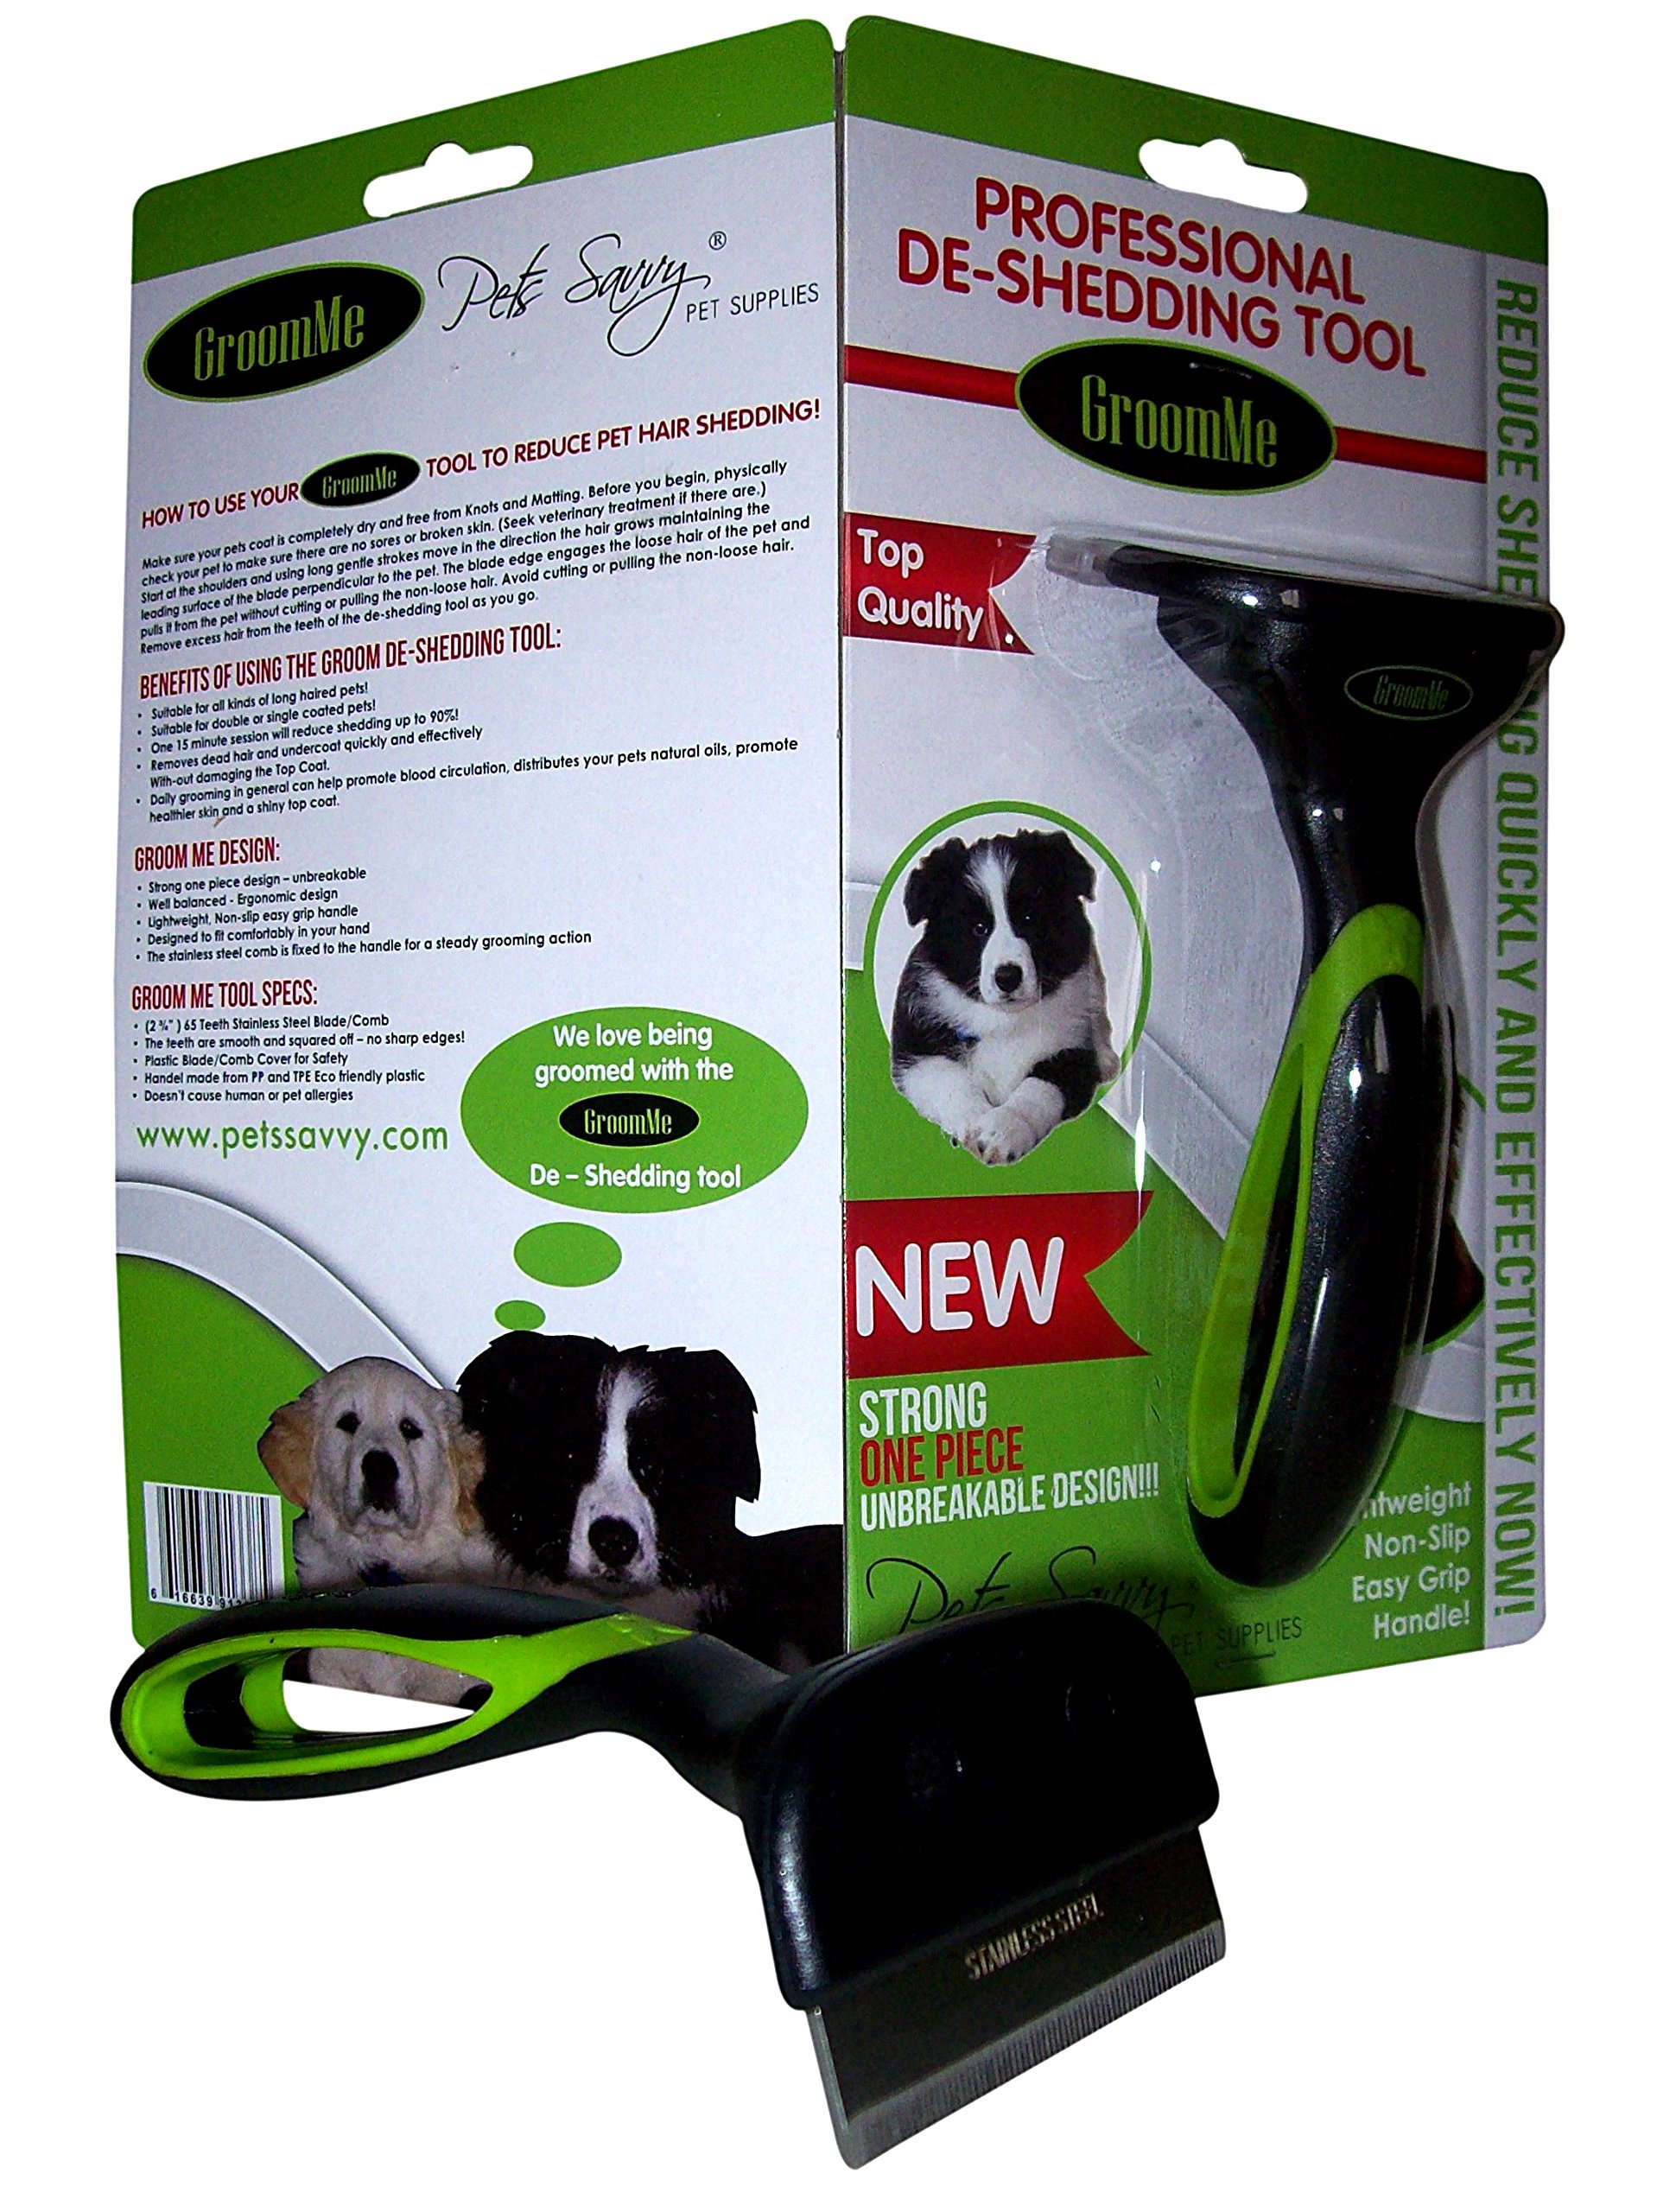 TOP QUALITY de Shedding Tool for Dog + Cat Grooming The Secret to Reducing Pet Shedding Quickly Up To 90% deshedder Tools for Dogs & Cats - Veterinary + Groomer approved for All Pets by GroomMe (Image #2)